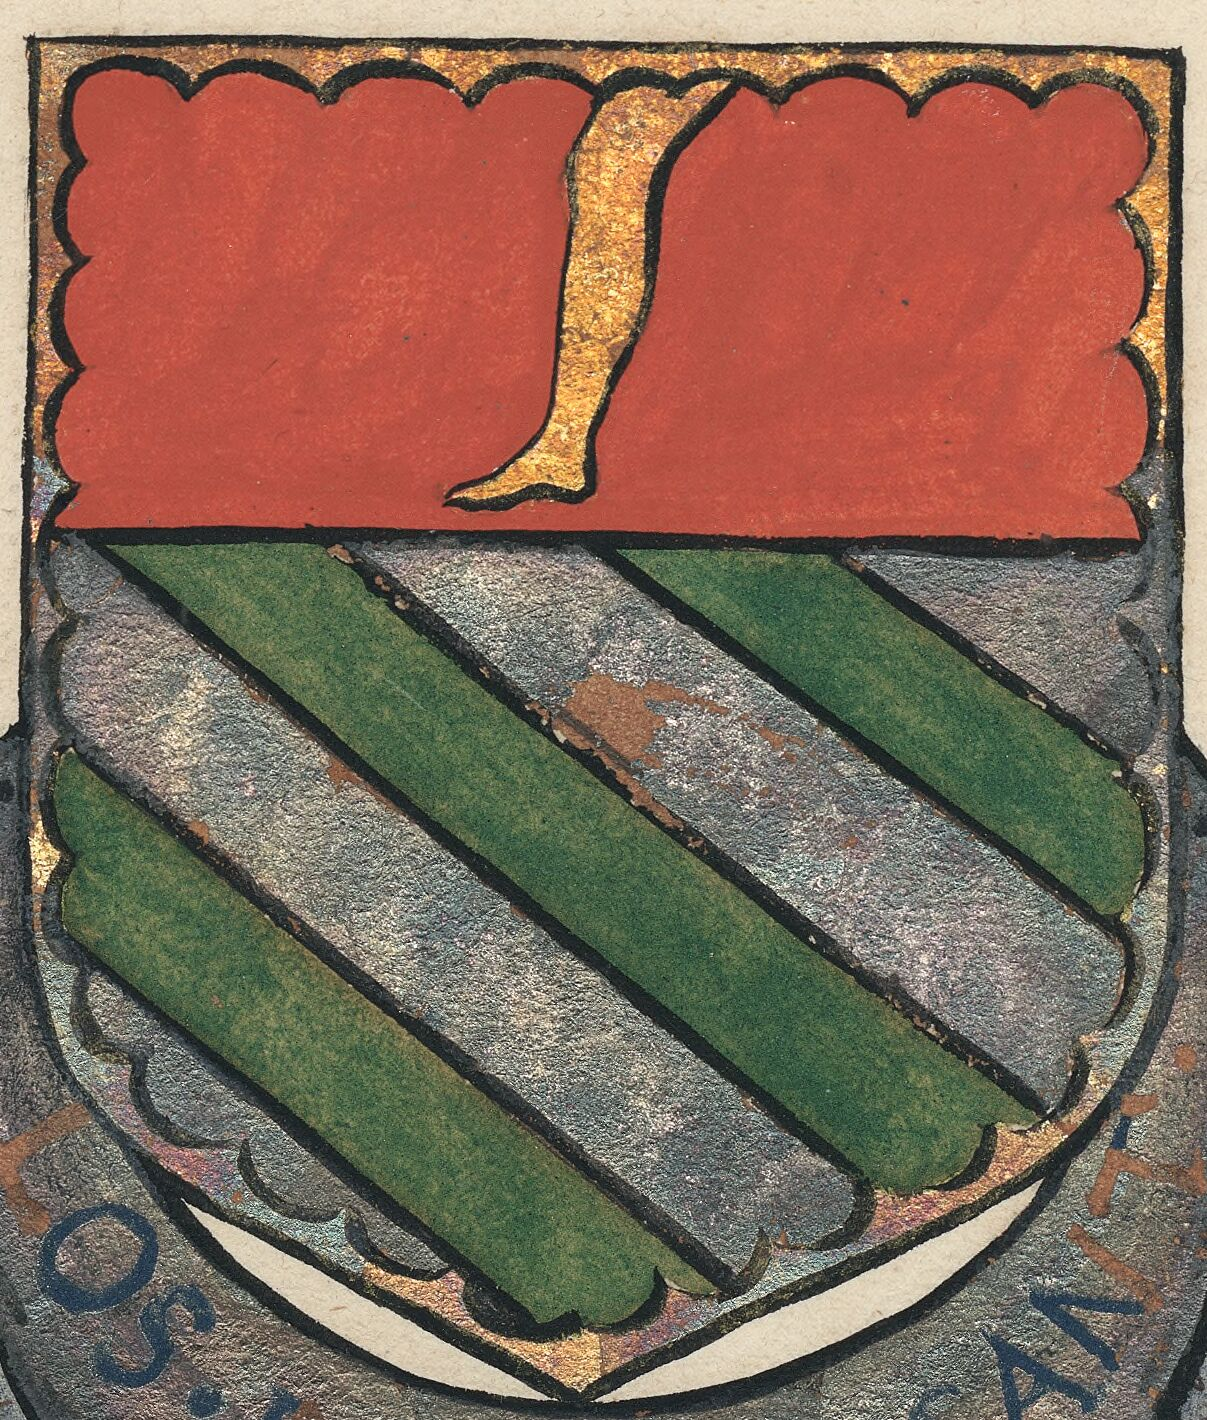 Coat of … arms?